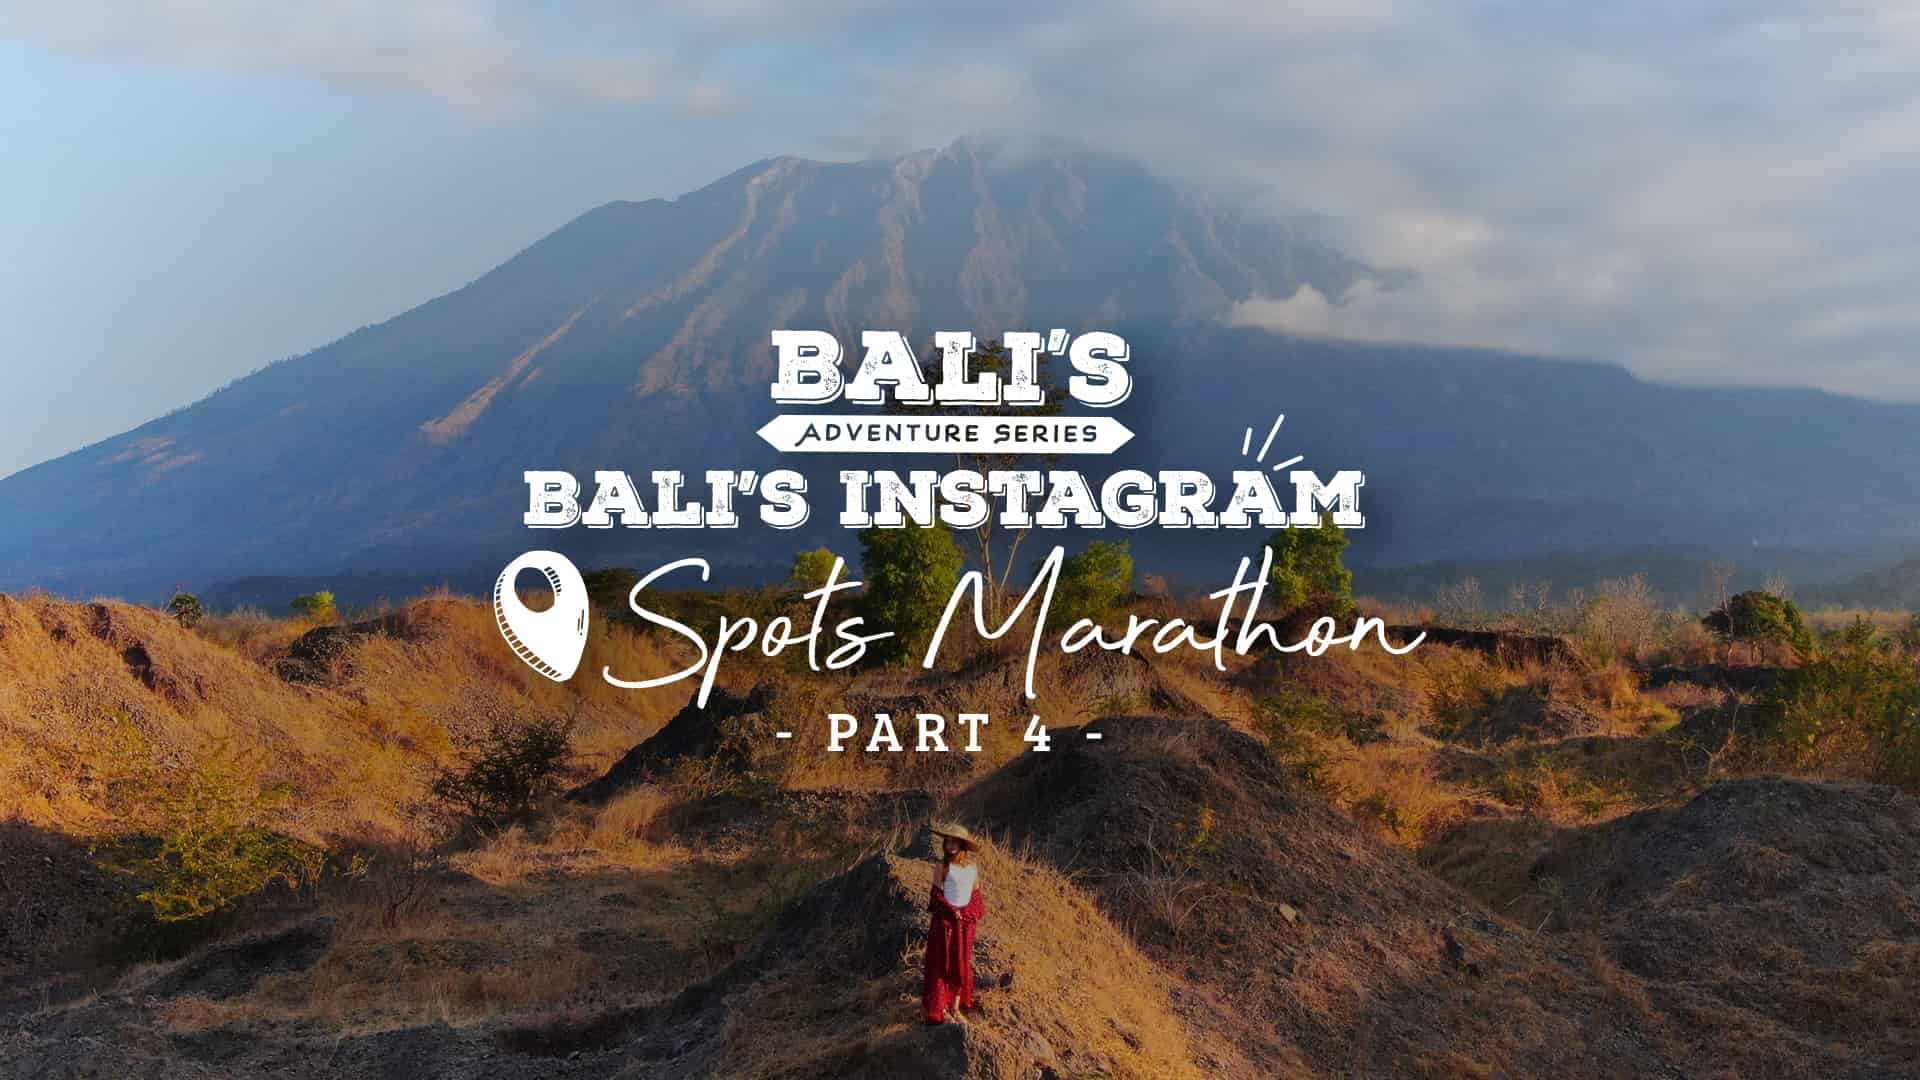 Bali's Instagramable spot past 4